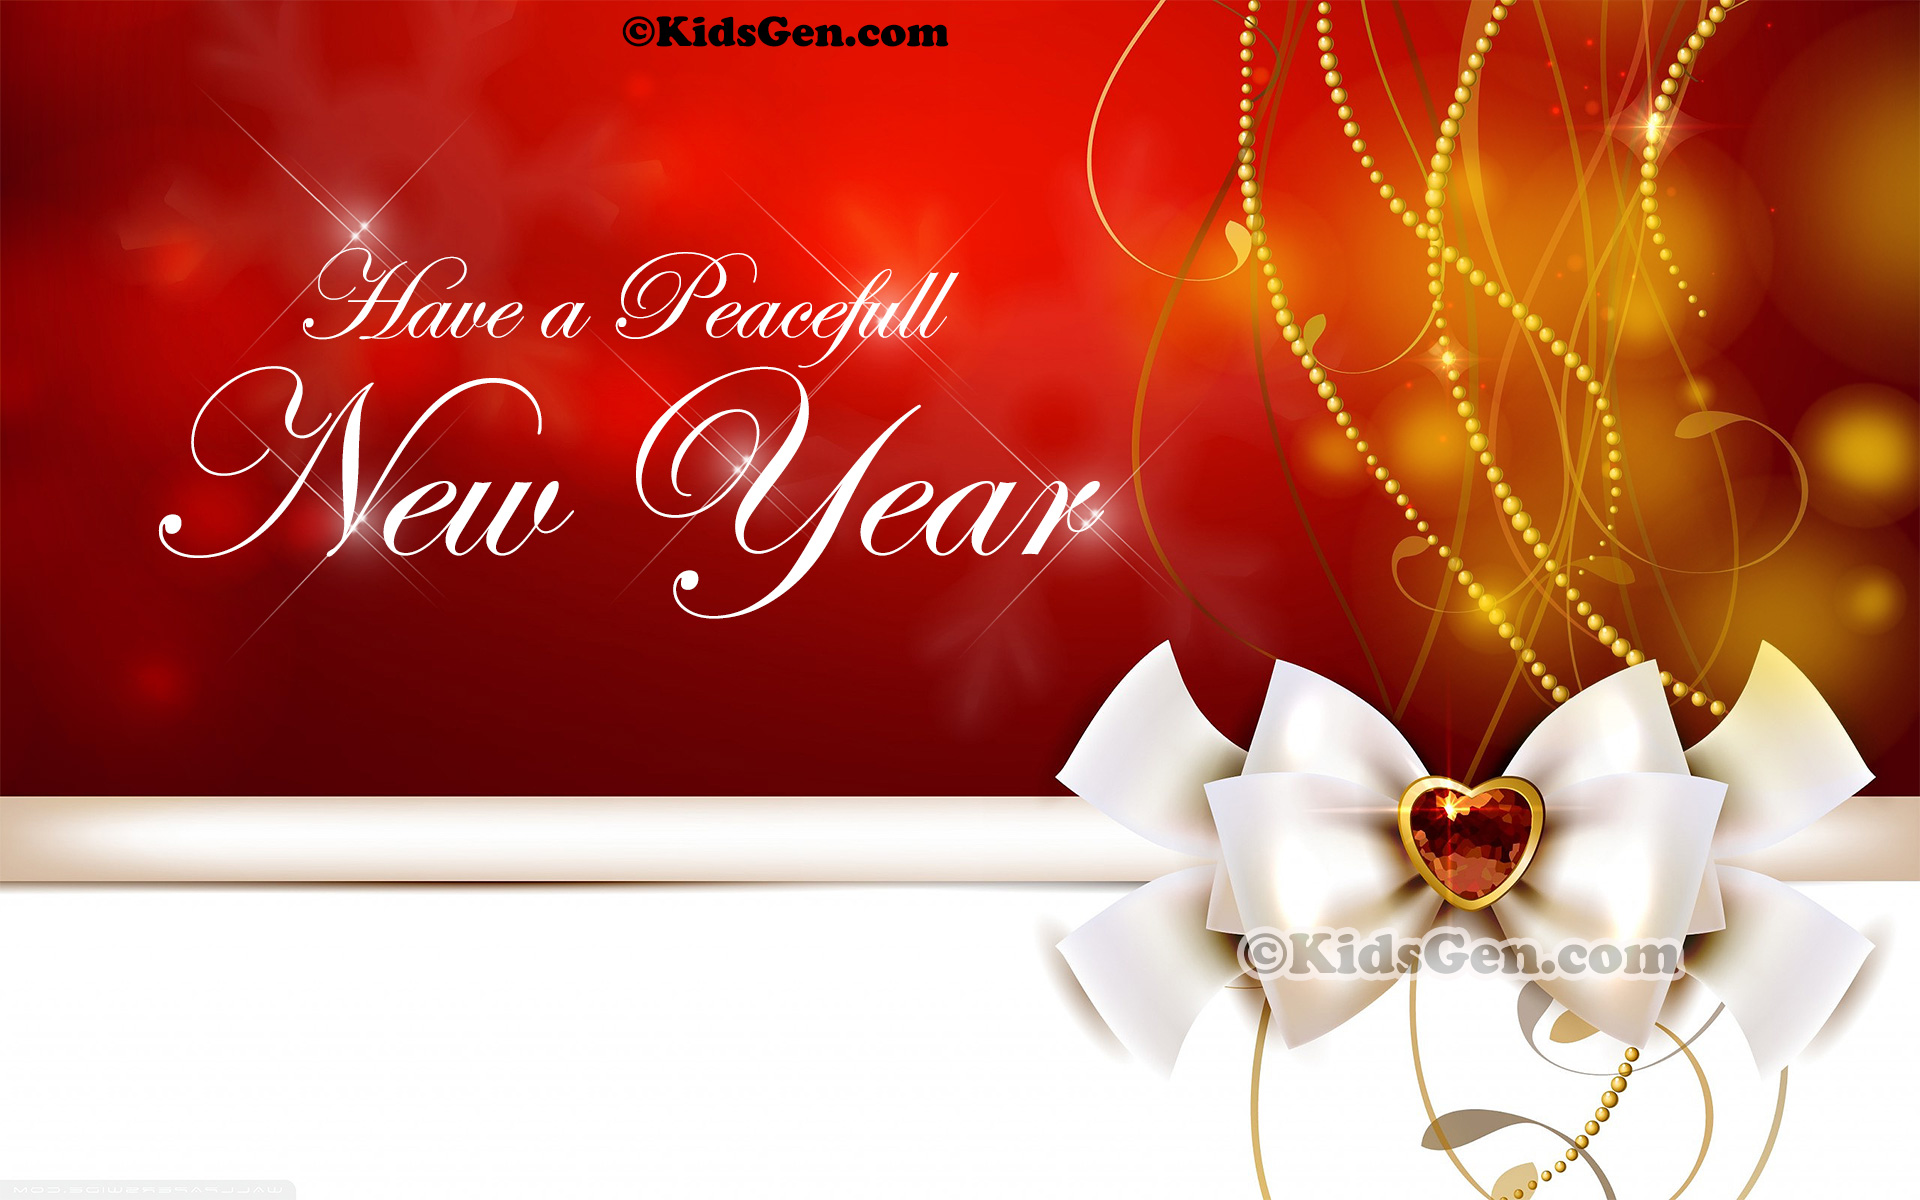 New Year Wallpapers For Desktop Widescreen Mobile And High Definition